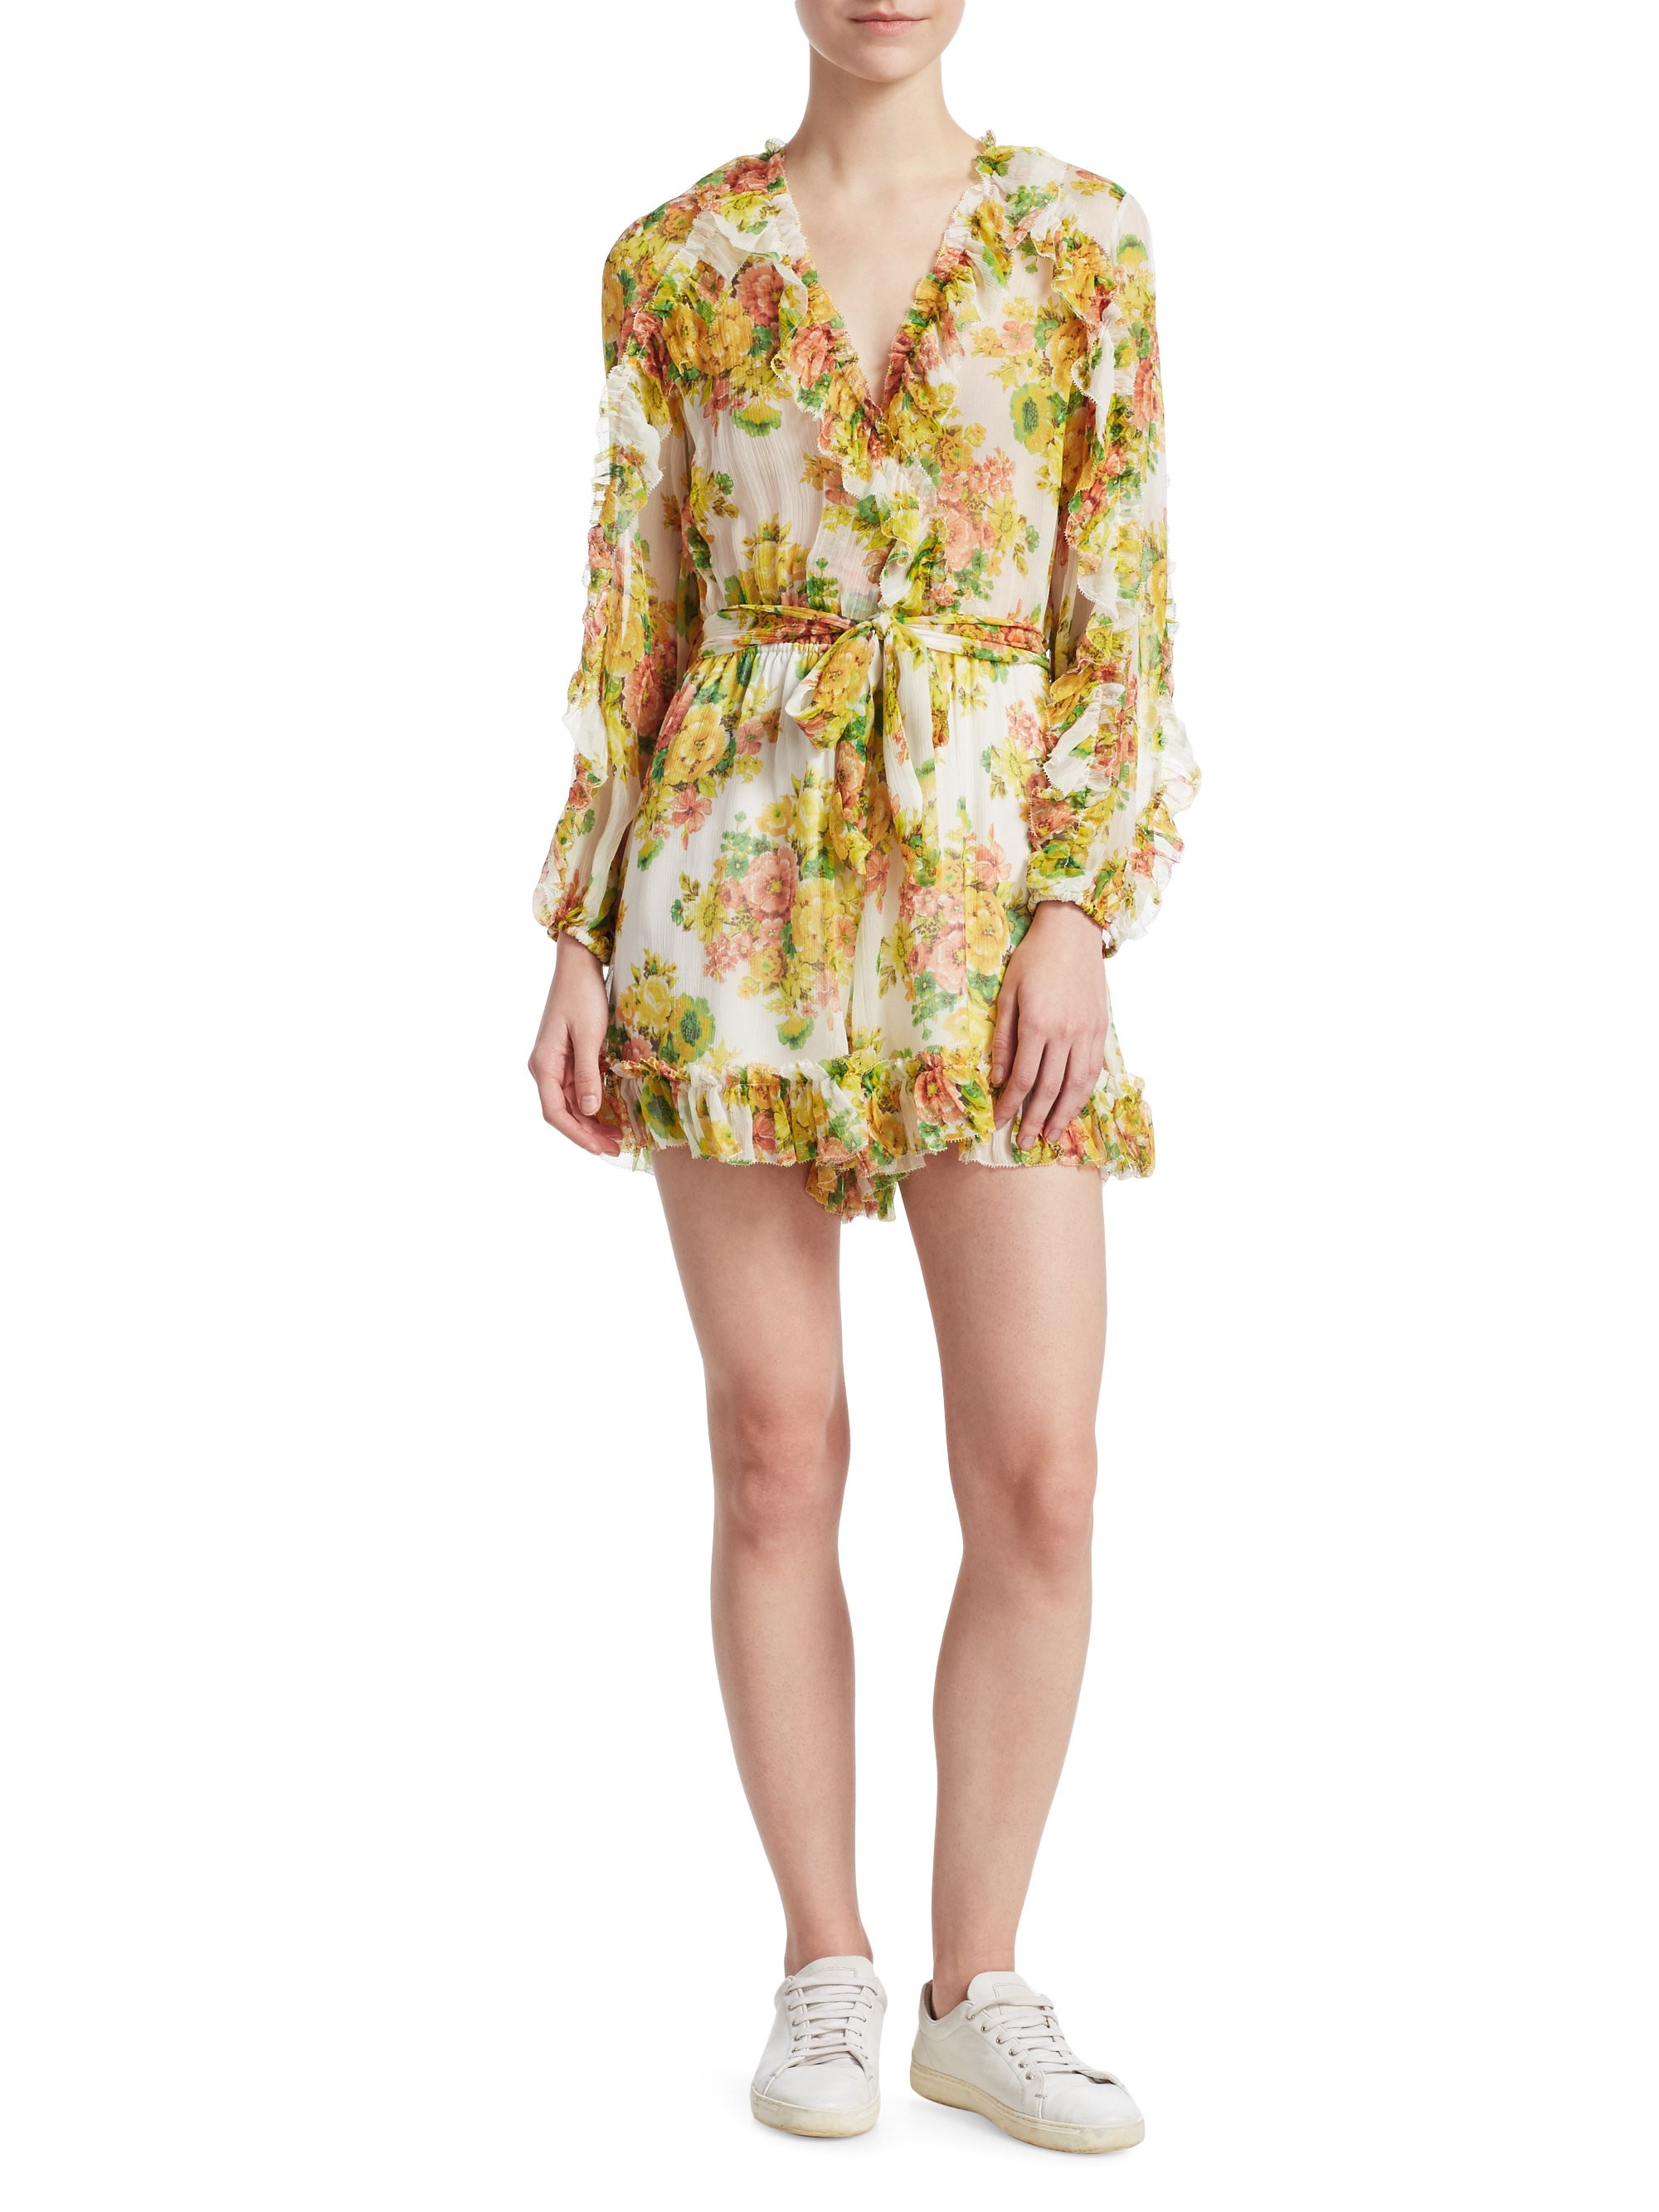 d5ef3f1b65bd Zimmermann Golden Ruffle Playsuit - Citrus Stamp Floral 3 (8-10)